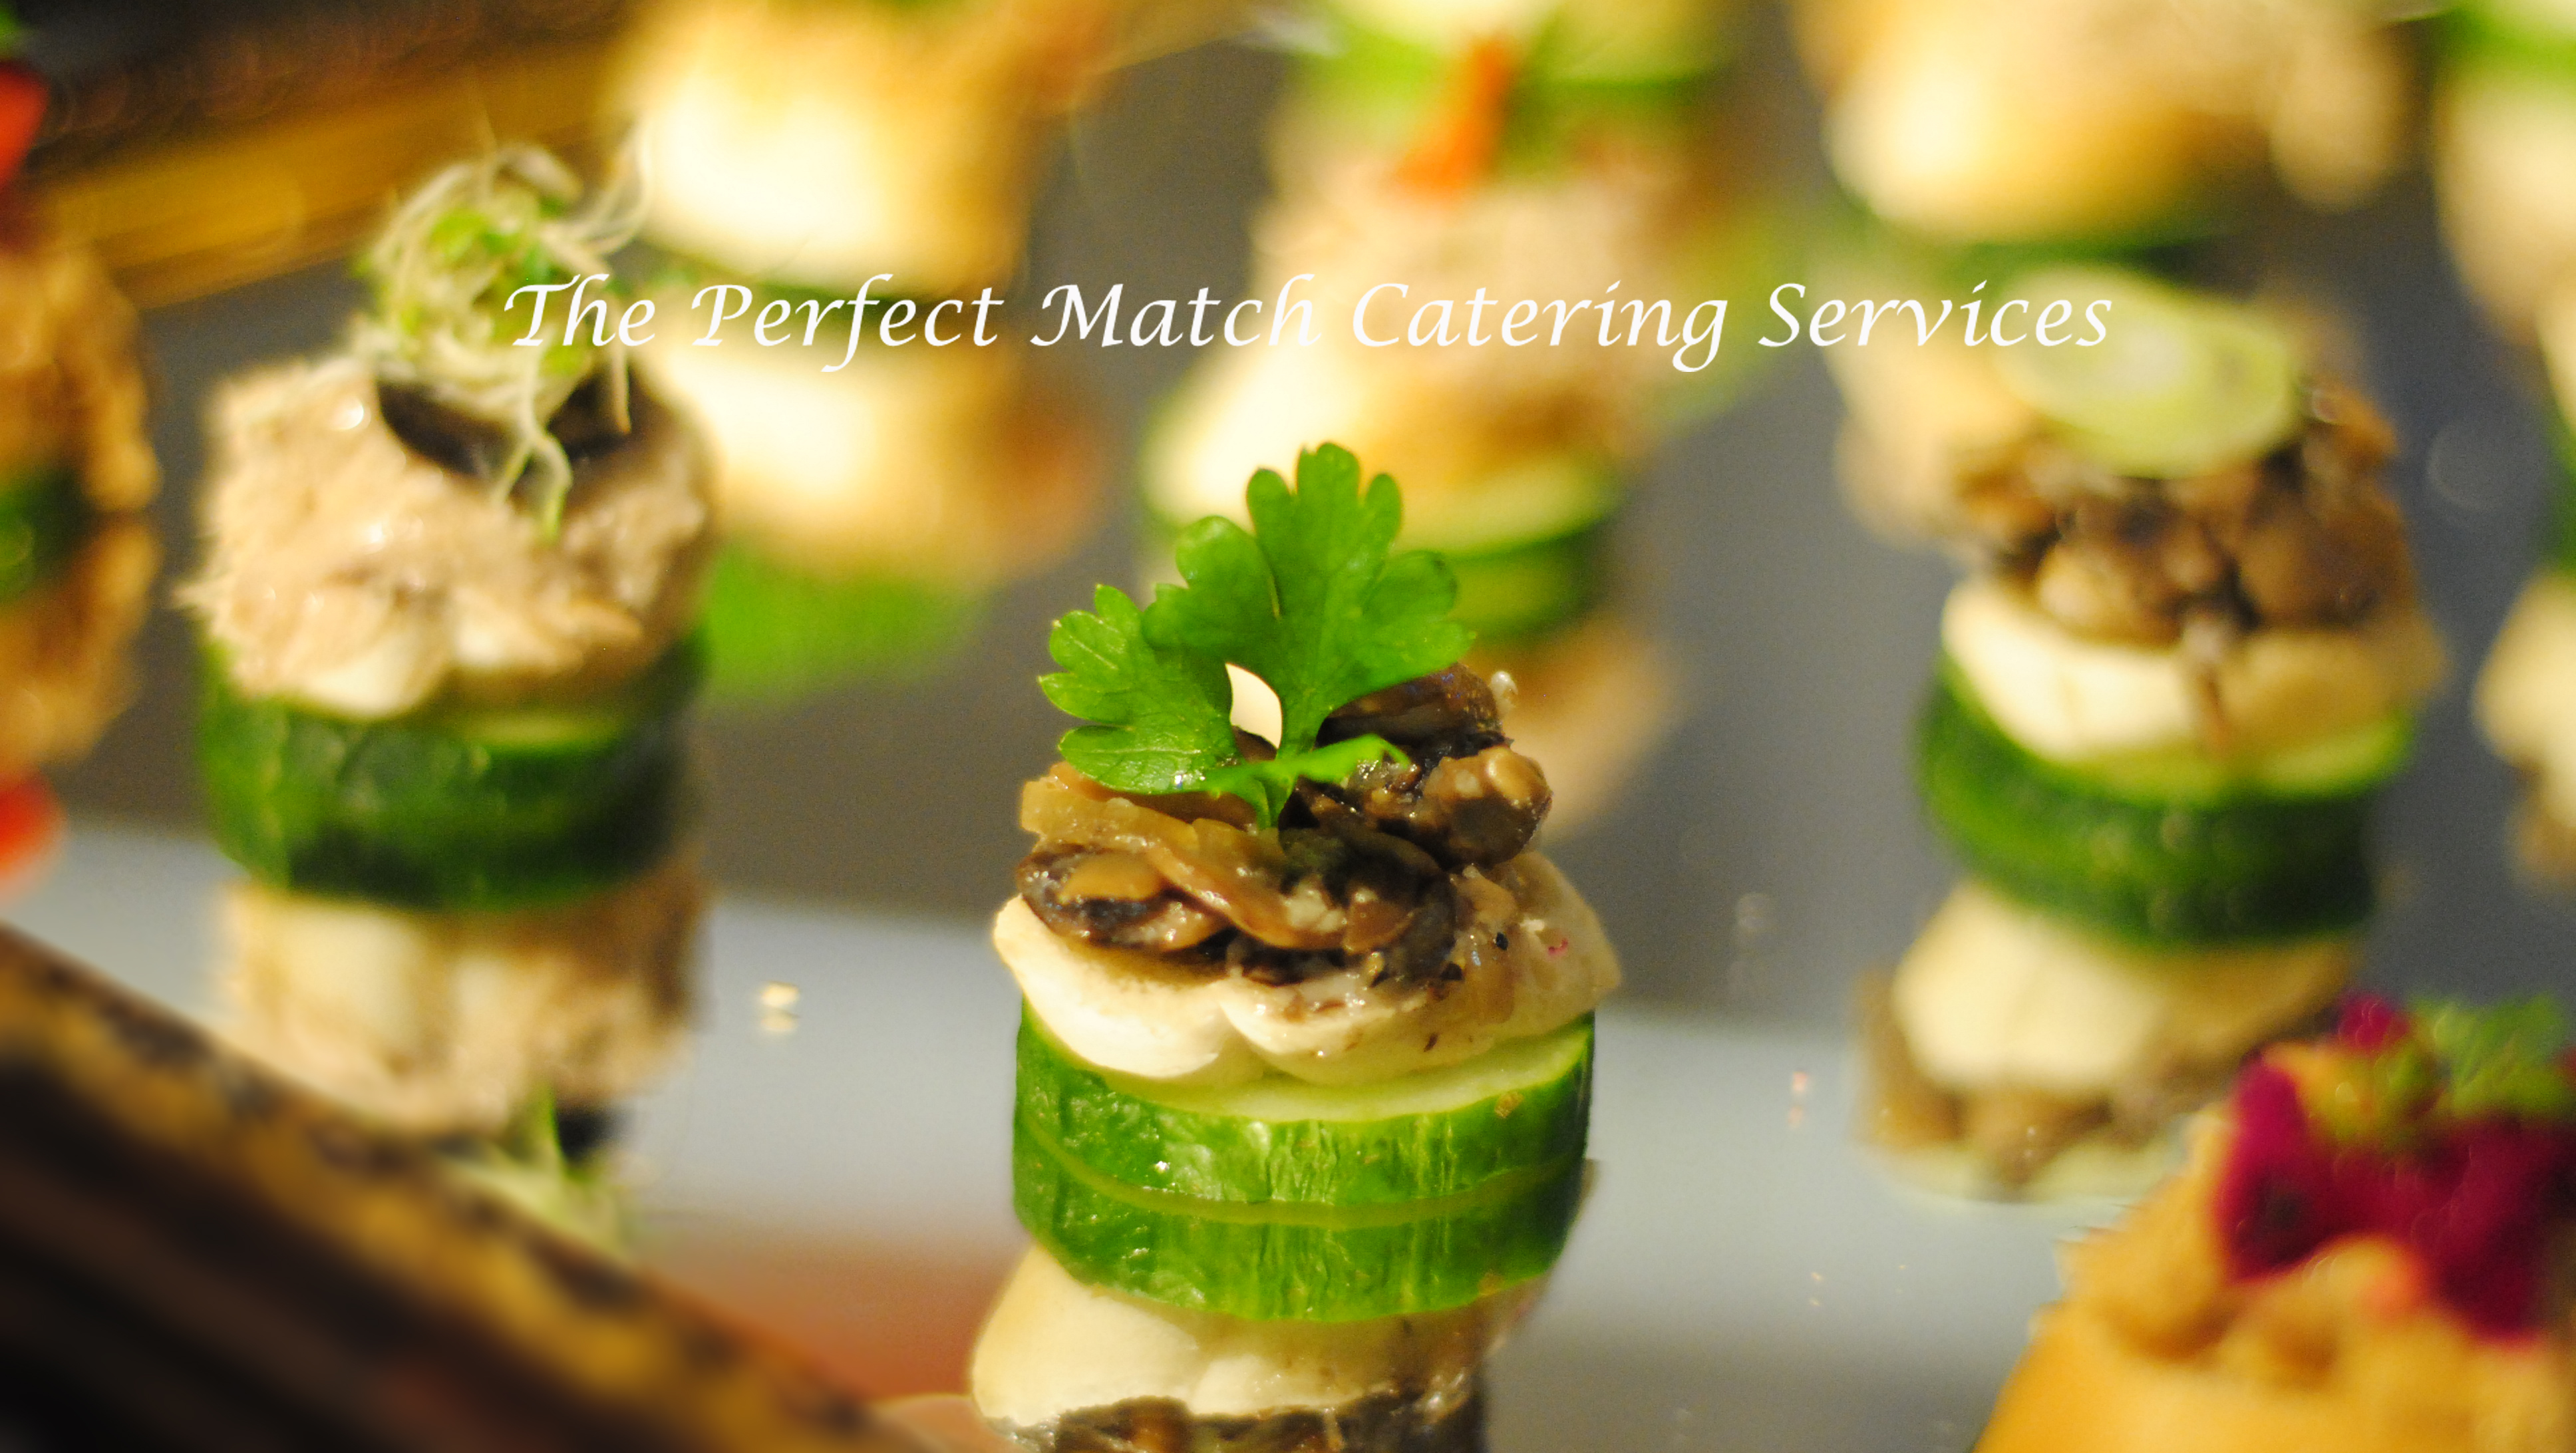 The Perfect Match Catering Services Good Food Brings